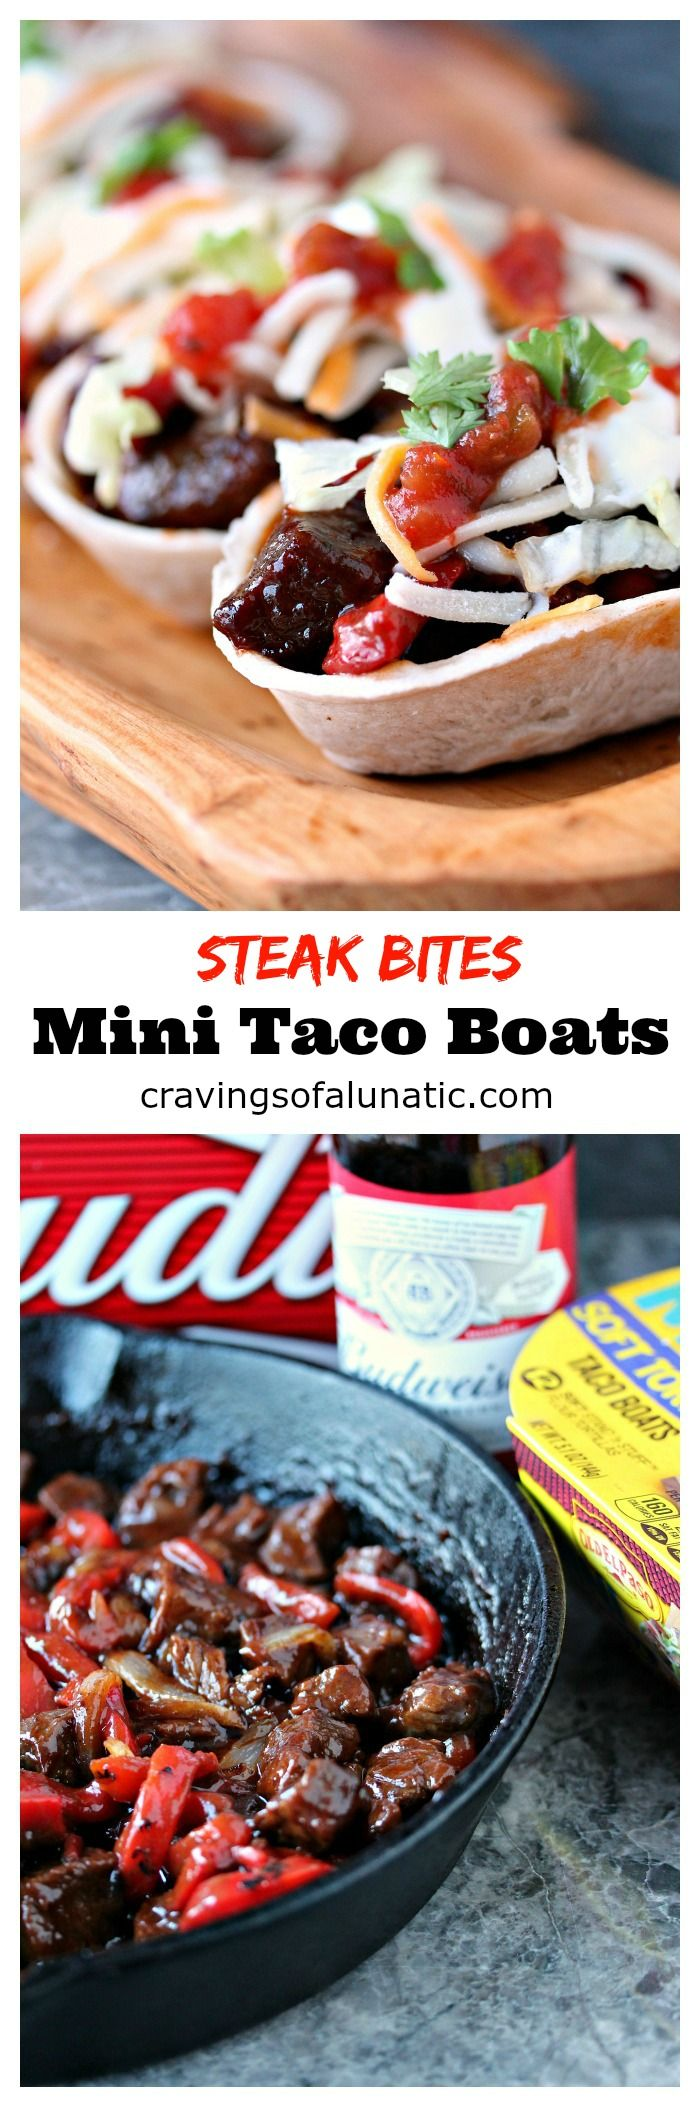 Steak Bites Mini Taco Boats from cravingsofalunatic.com- This taco recipe uses steak marinated in beer, then cooked to perfection in a cast iron skillet, and topped with Barbecue Sauce. It's Tex-Mex in mini form. Every bite is full of flavour. (@CravingsLunatic) #sponsored